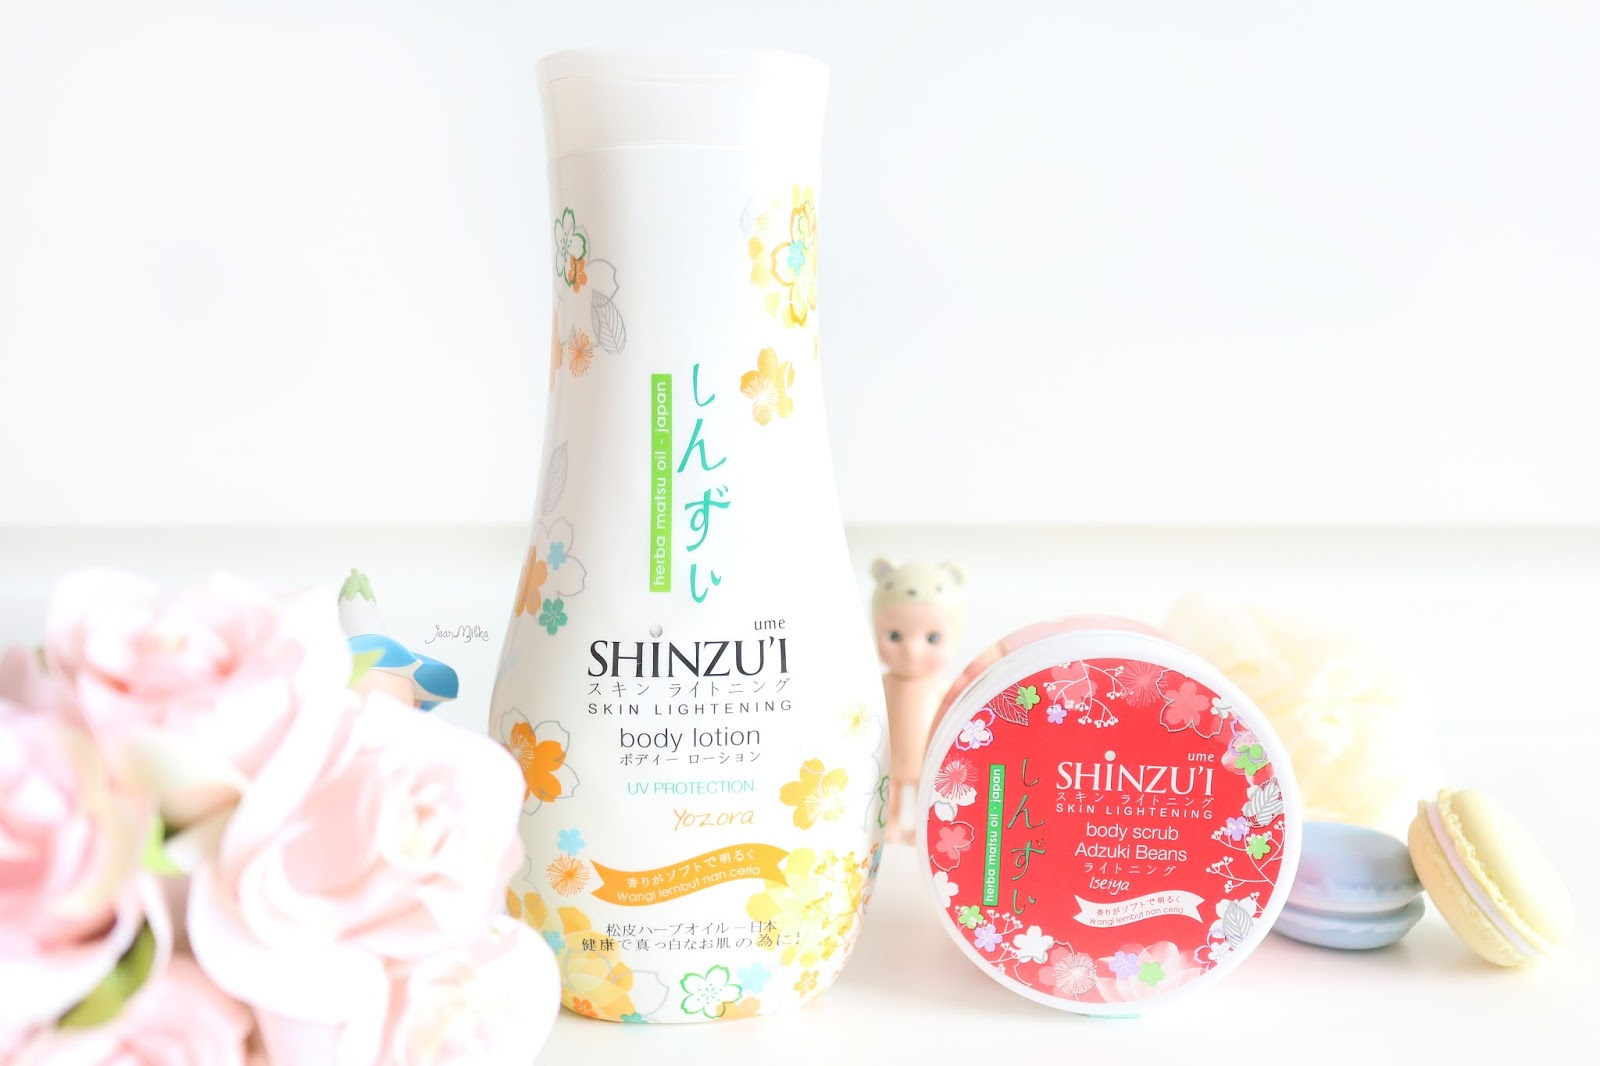 shinzui, shinzui ume, body care, body lotion shinzui, review shinzui, shinzui ume yozora, shinzui ume iseiya, body scrub, drugstore